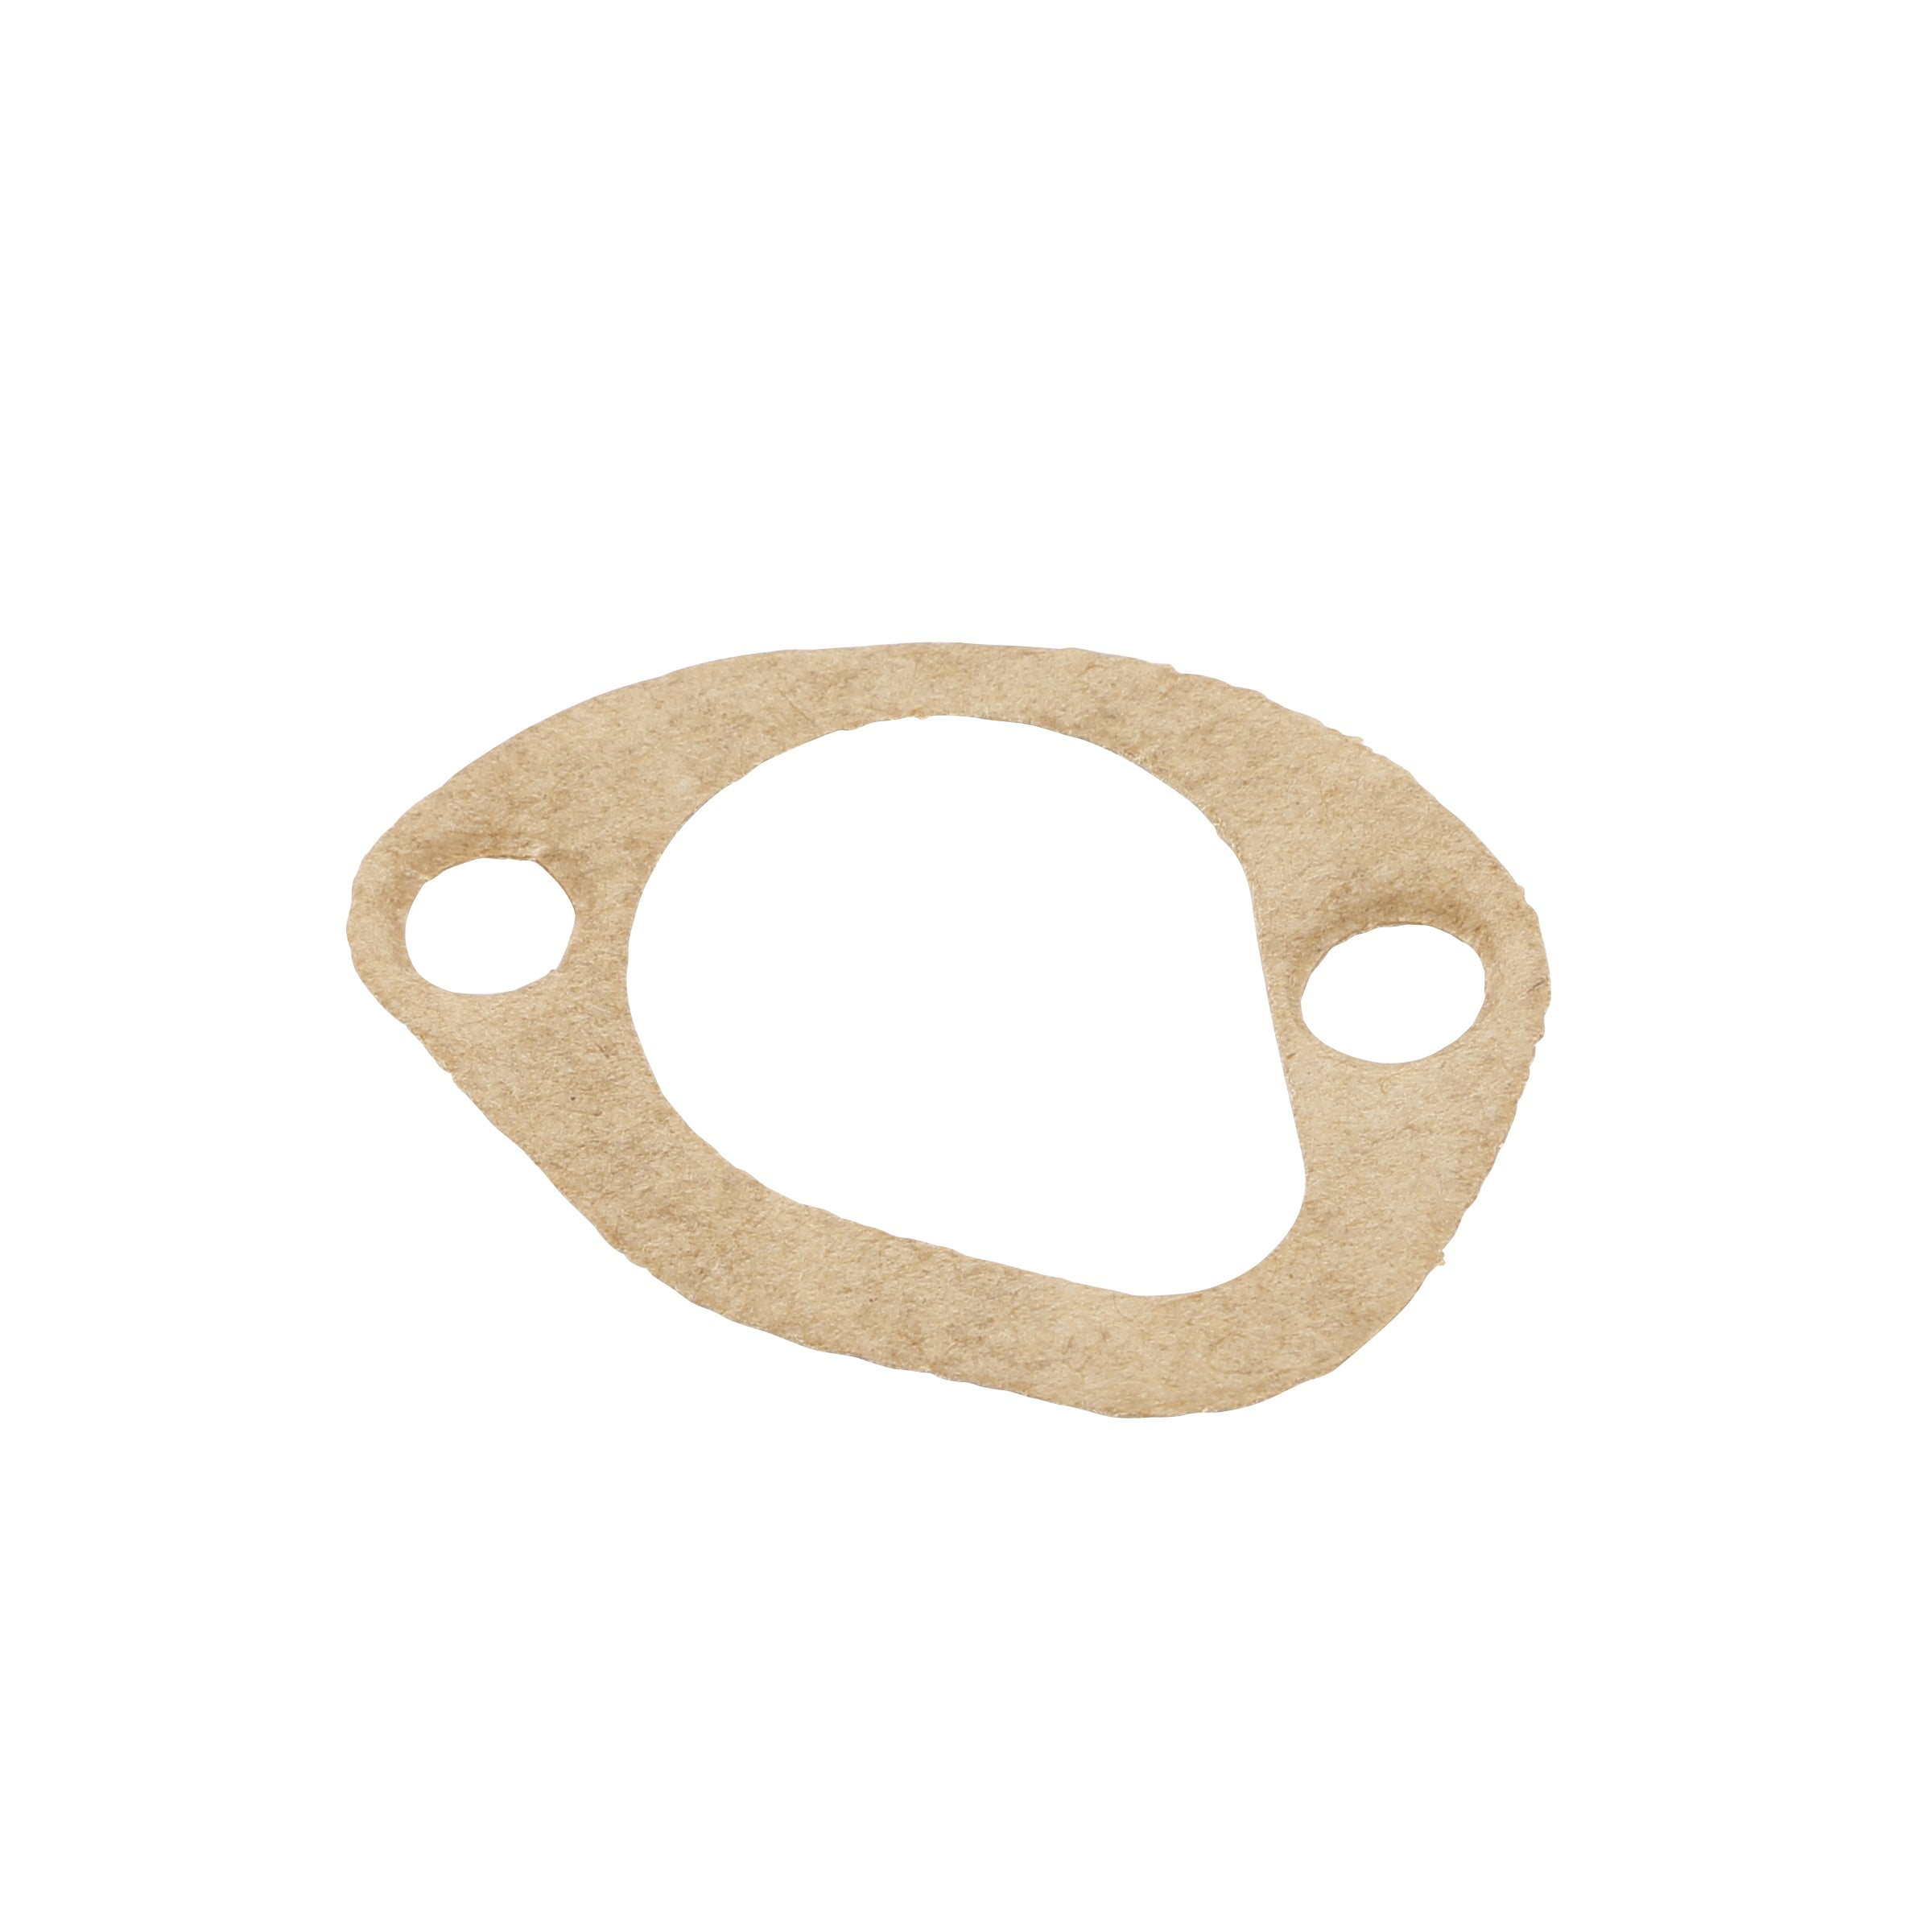 Oil Pump Screen Gasket • 1928-34